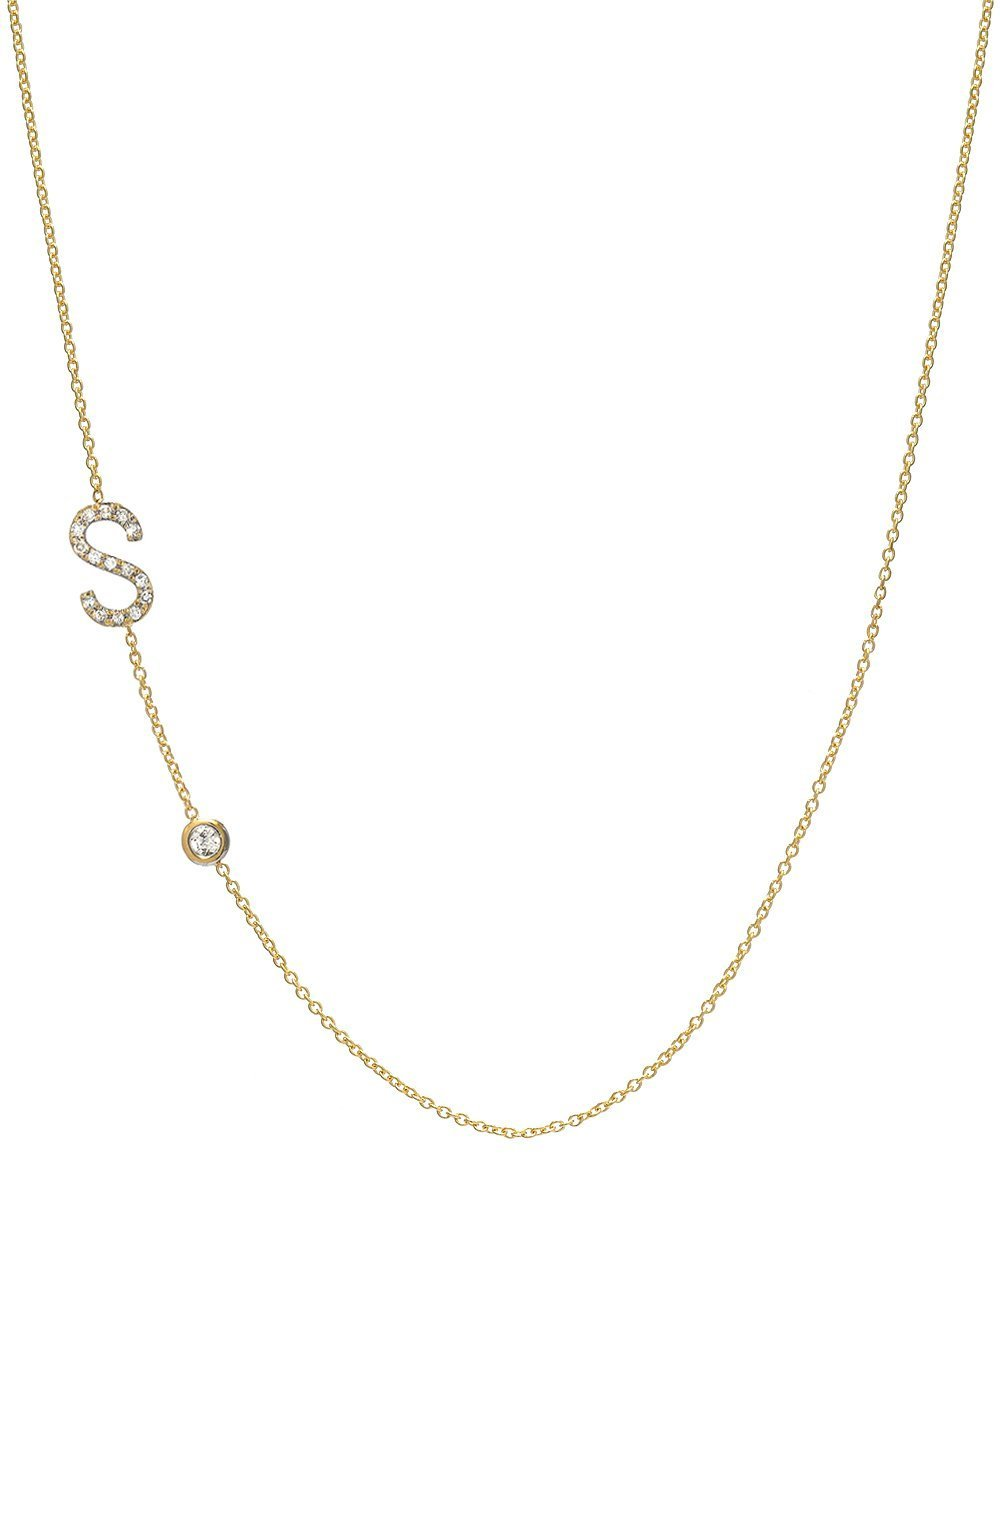 Diamond letter necklace, 14k gold, pave diamond